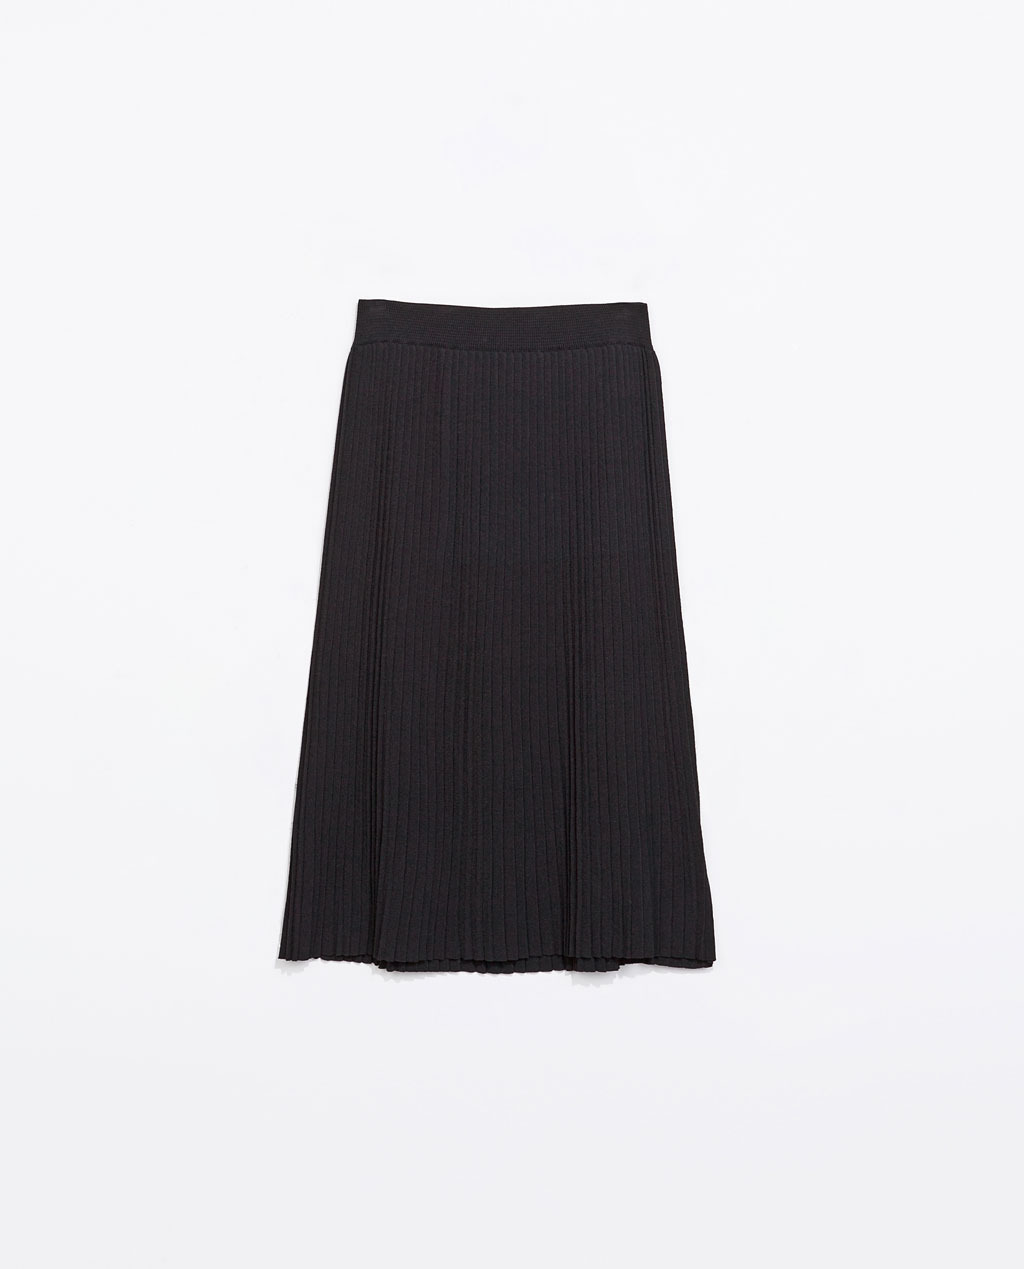 Knee Length Fine Pleat Skirt - pattern: plain; fit: loose/voluminous; style: pleated; waist: high rise; predominant colour: navy; occasions: casual, evening, work, creative work; length: on the knee; hip detail: structured pleats at hip; pattern type: knitted - other; texture group: other - light to midweight; trends: powerful pleats; season: s/s 2014